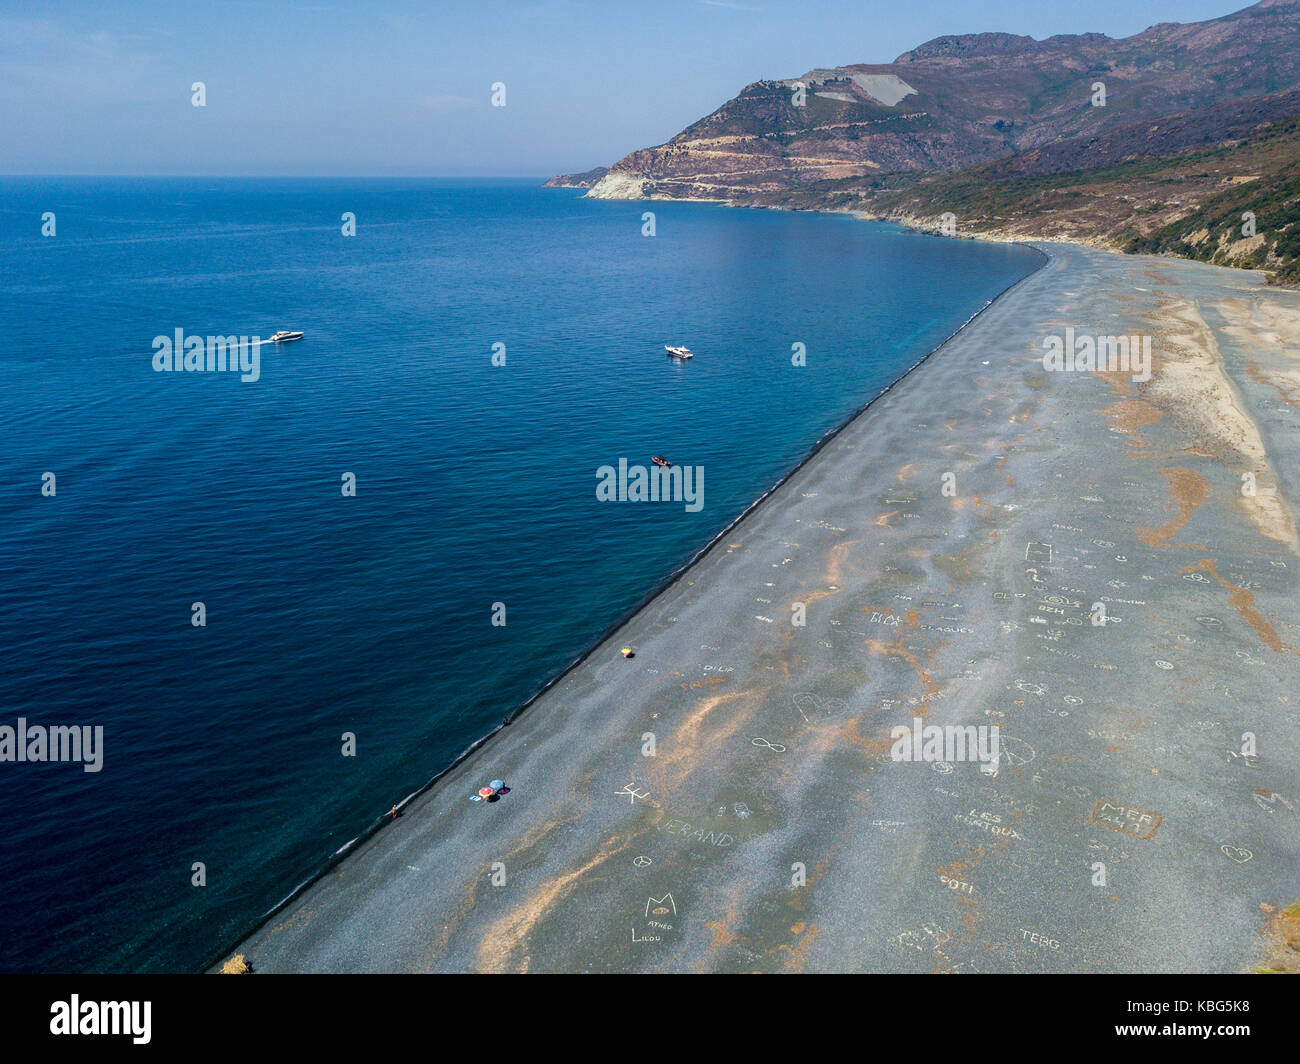 Aerial view of the black pebble beach, Nonza, Geometric designs made with stones, sailboats and moored boats near - Stock Image